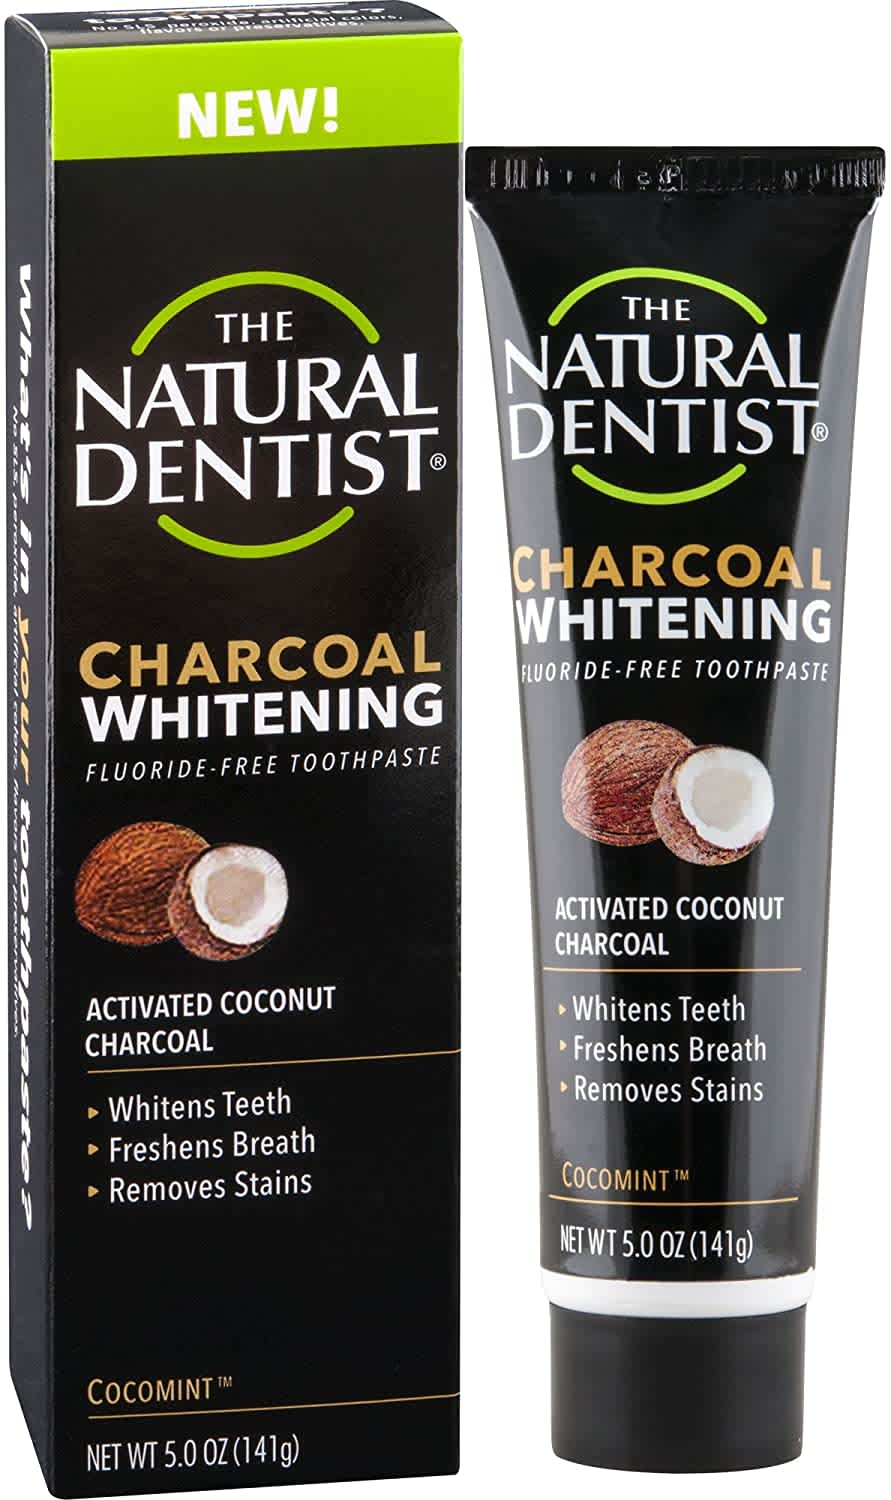 The Natural Dentist 5-oz. Charcoal Whitening Toothpaste